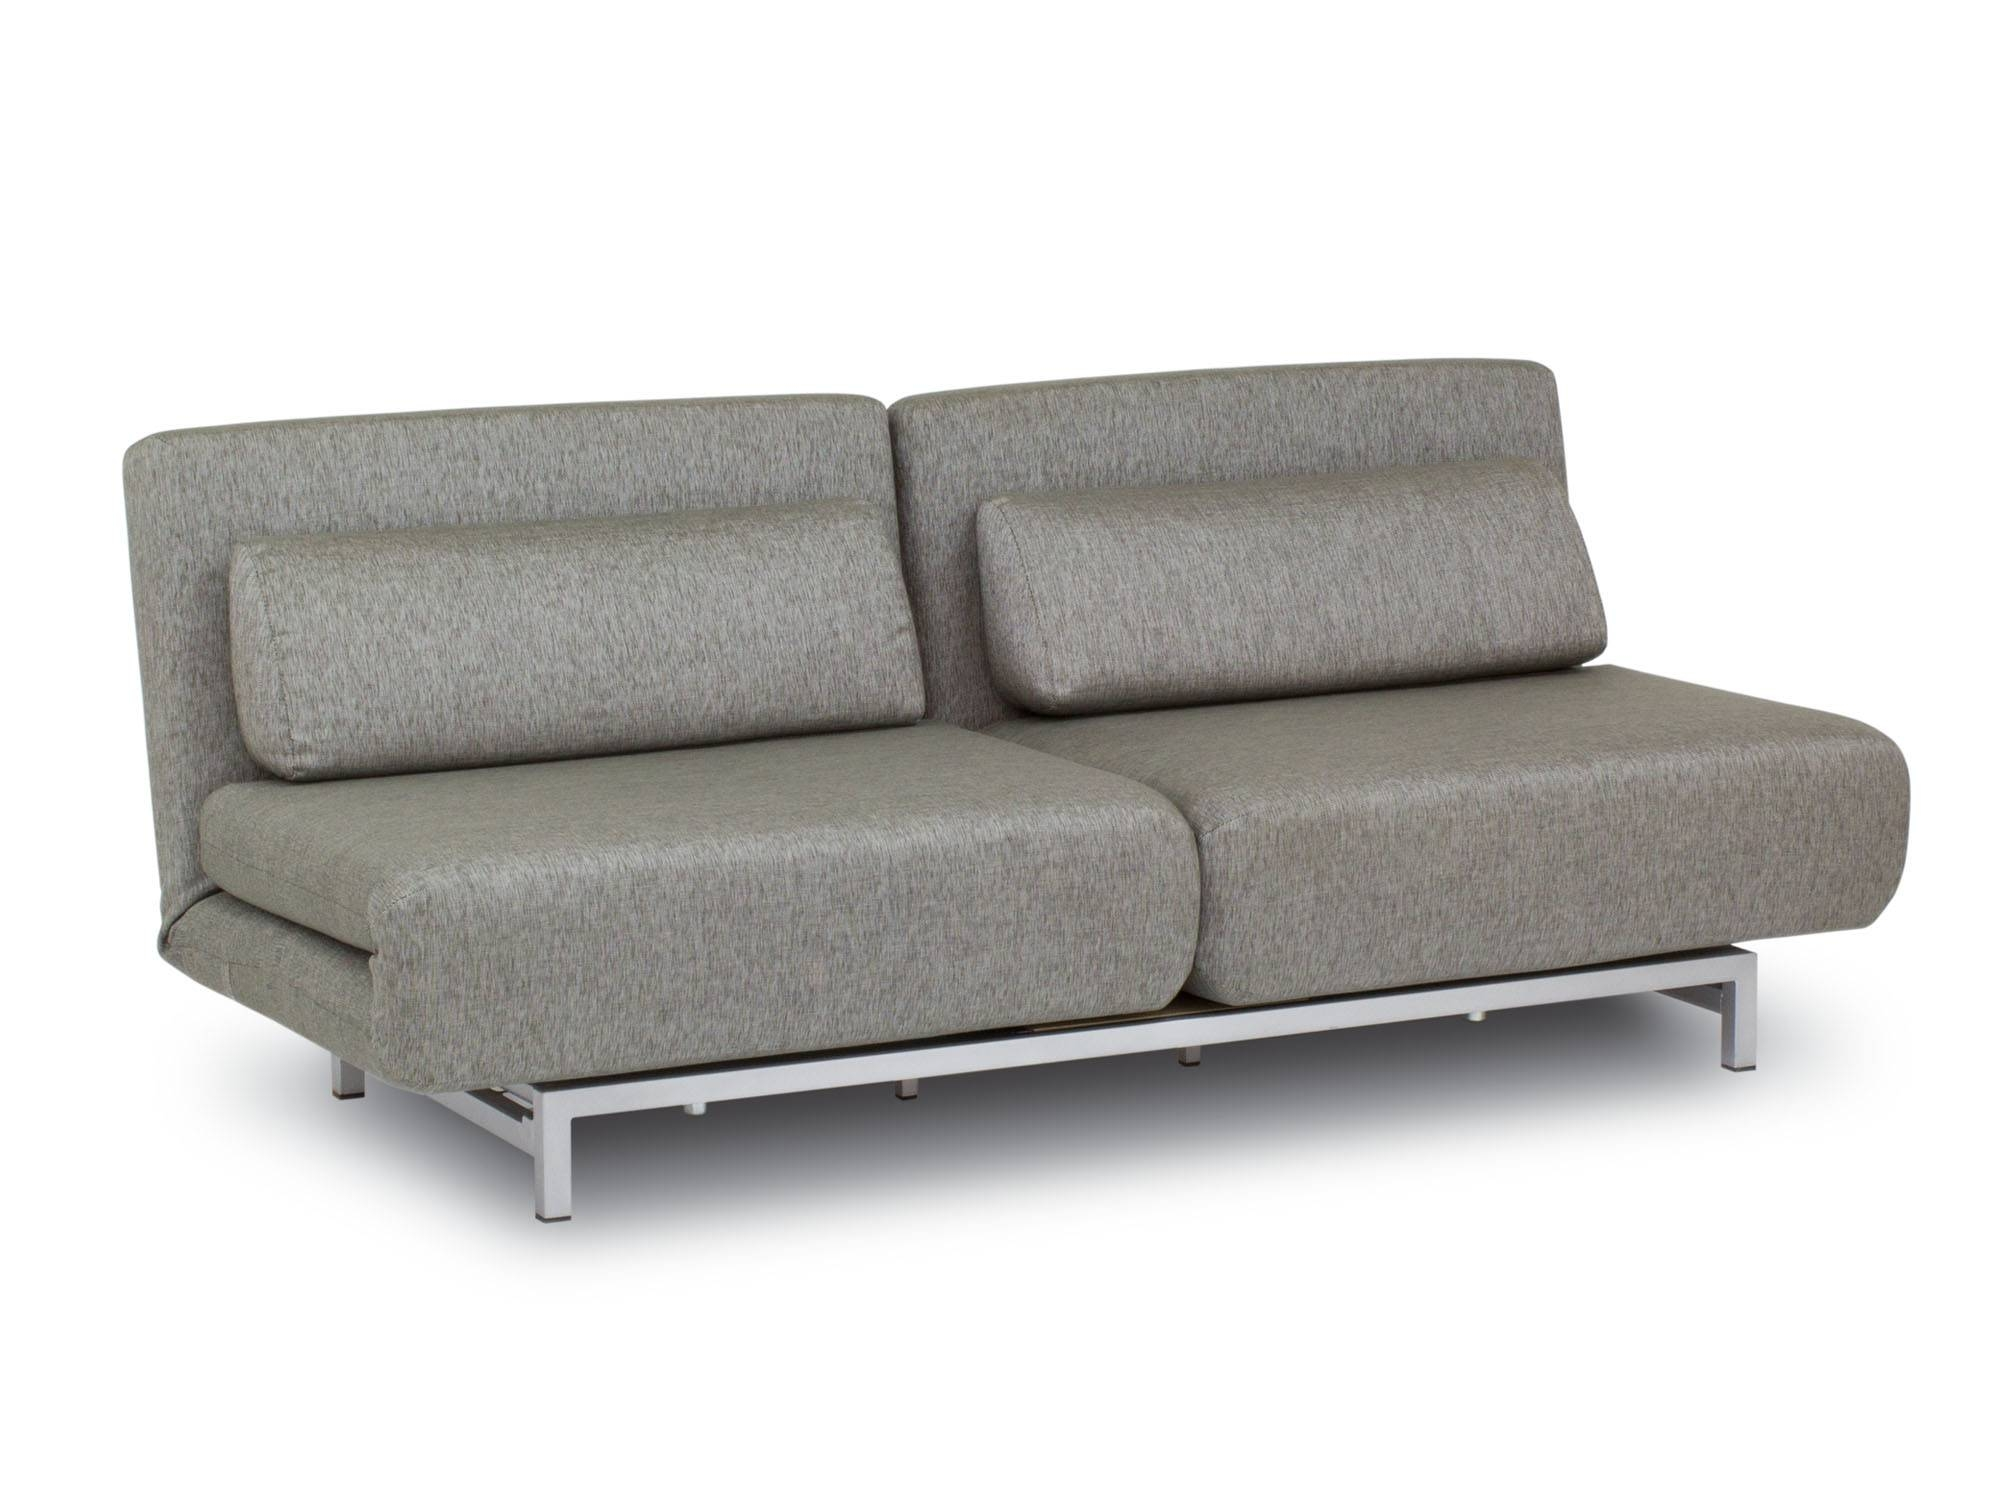 Sofa Chair Bed | Sofa Gallery | Kengire Regarding Cheap Single Sofa Bed Chairs (View 22 of 30)